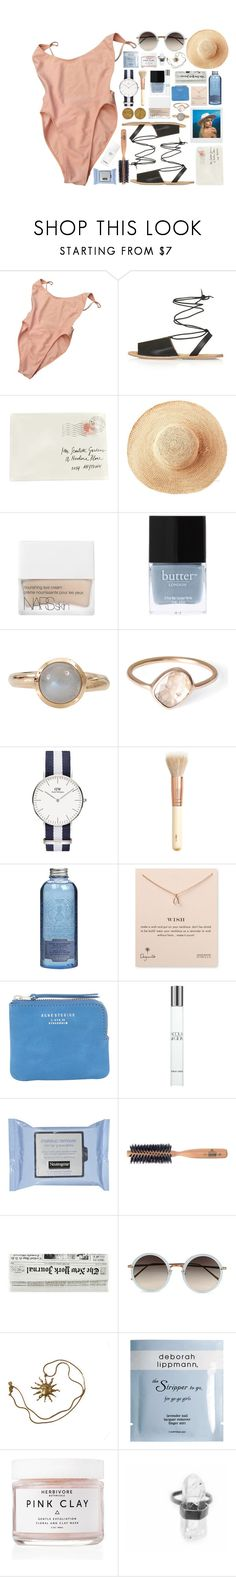 """""""EURO TAN"""" by bells-in-wanderland ❤ liked on Polyvore featuring American Apparel, Topshop, Moschino, Polaroid, Toast, NARS Cosmetics, Butter London, Tamara Comolli, Parisi and H&M"""